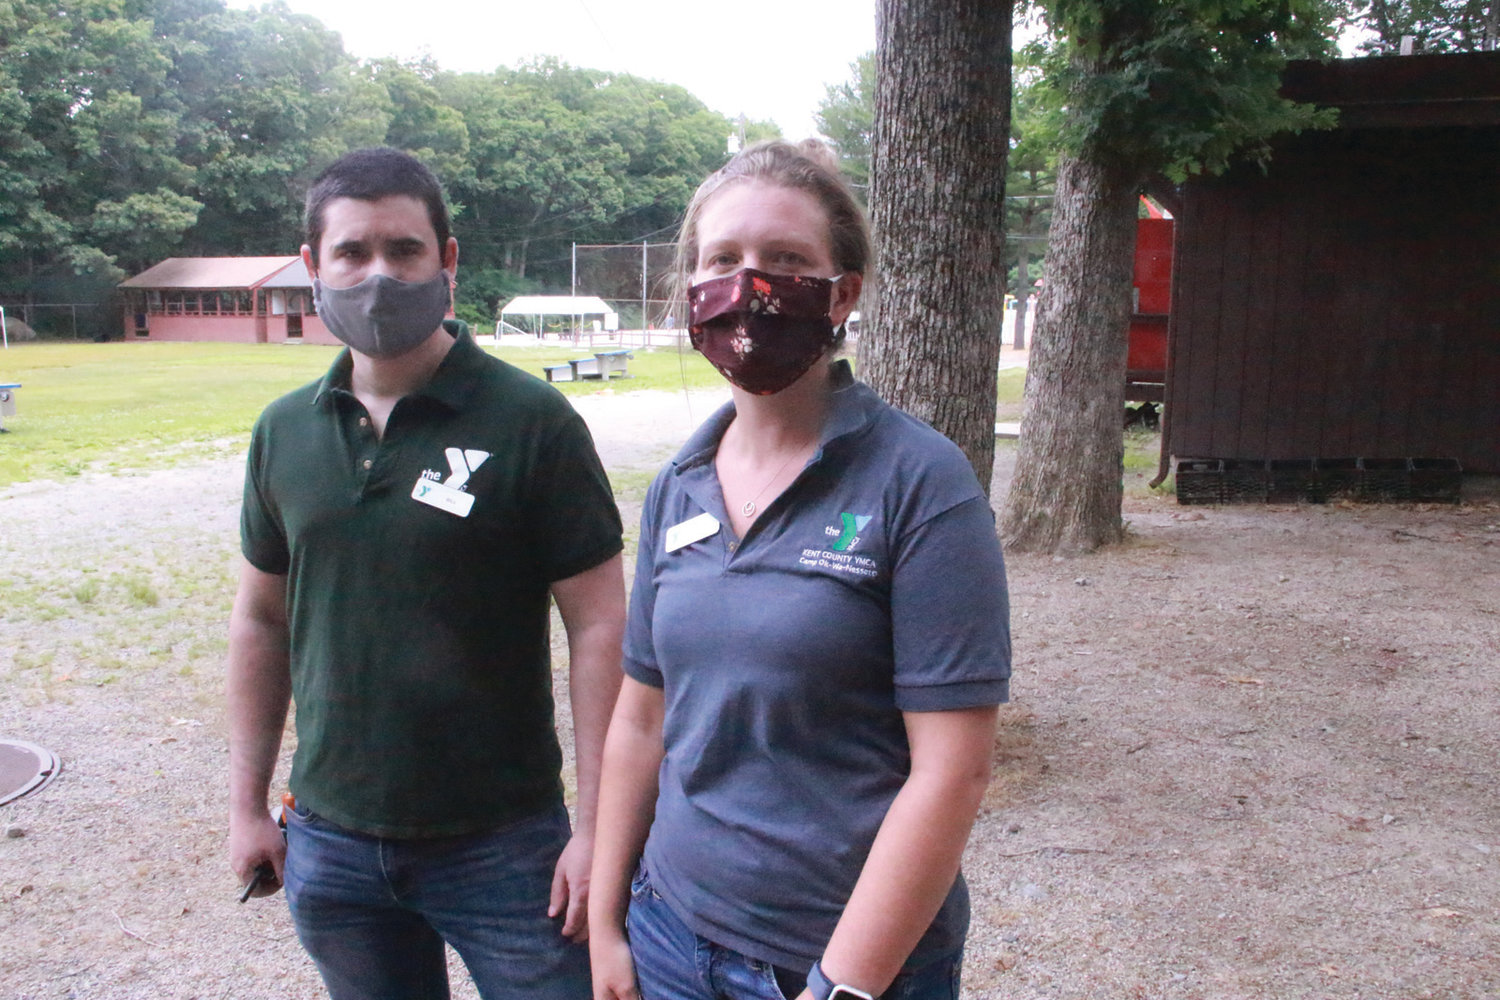 CAMP WITH PRECAUTIONS: Bill McCabe and Becky Merritt run the Y summer camp. They and counselors wear masks, but the campers who range in age from 6 to 11 don't. Under COVID-19 reopening guidelines, the camp is divided into groups of no more than 15, including two counselors.